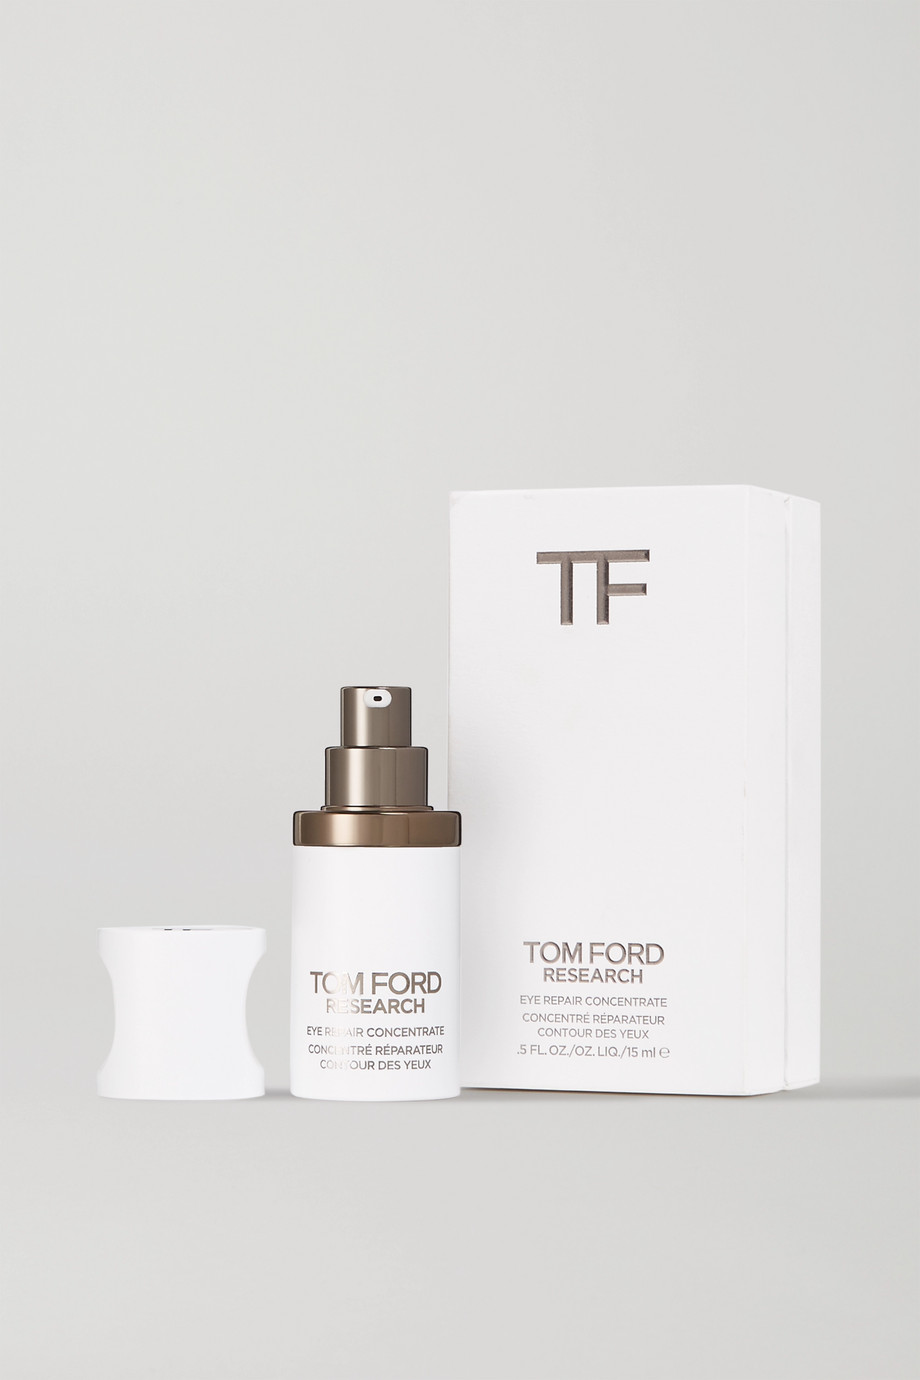 TOM FORD BEAUTY Research Eye Repair Concentrate, 15ml